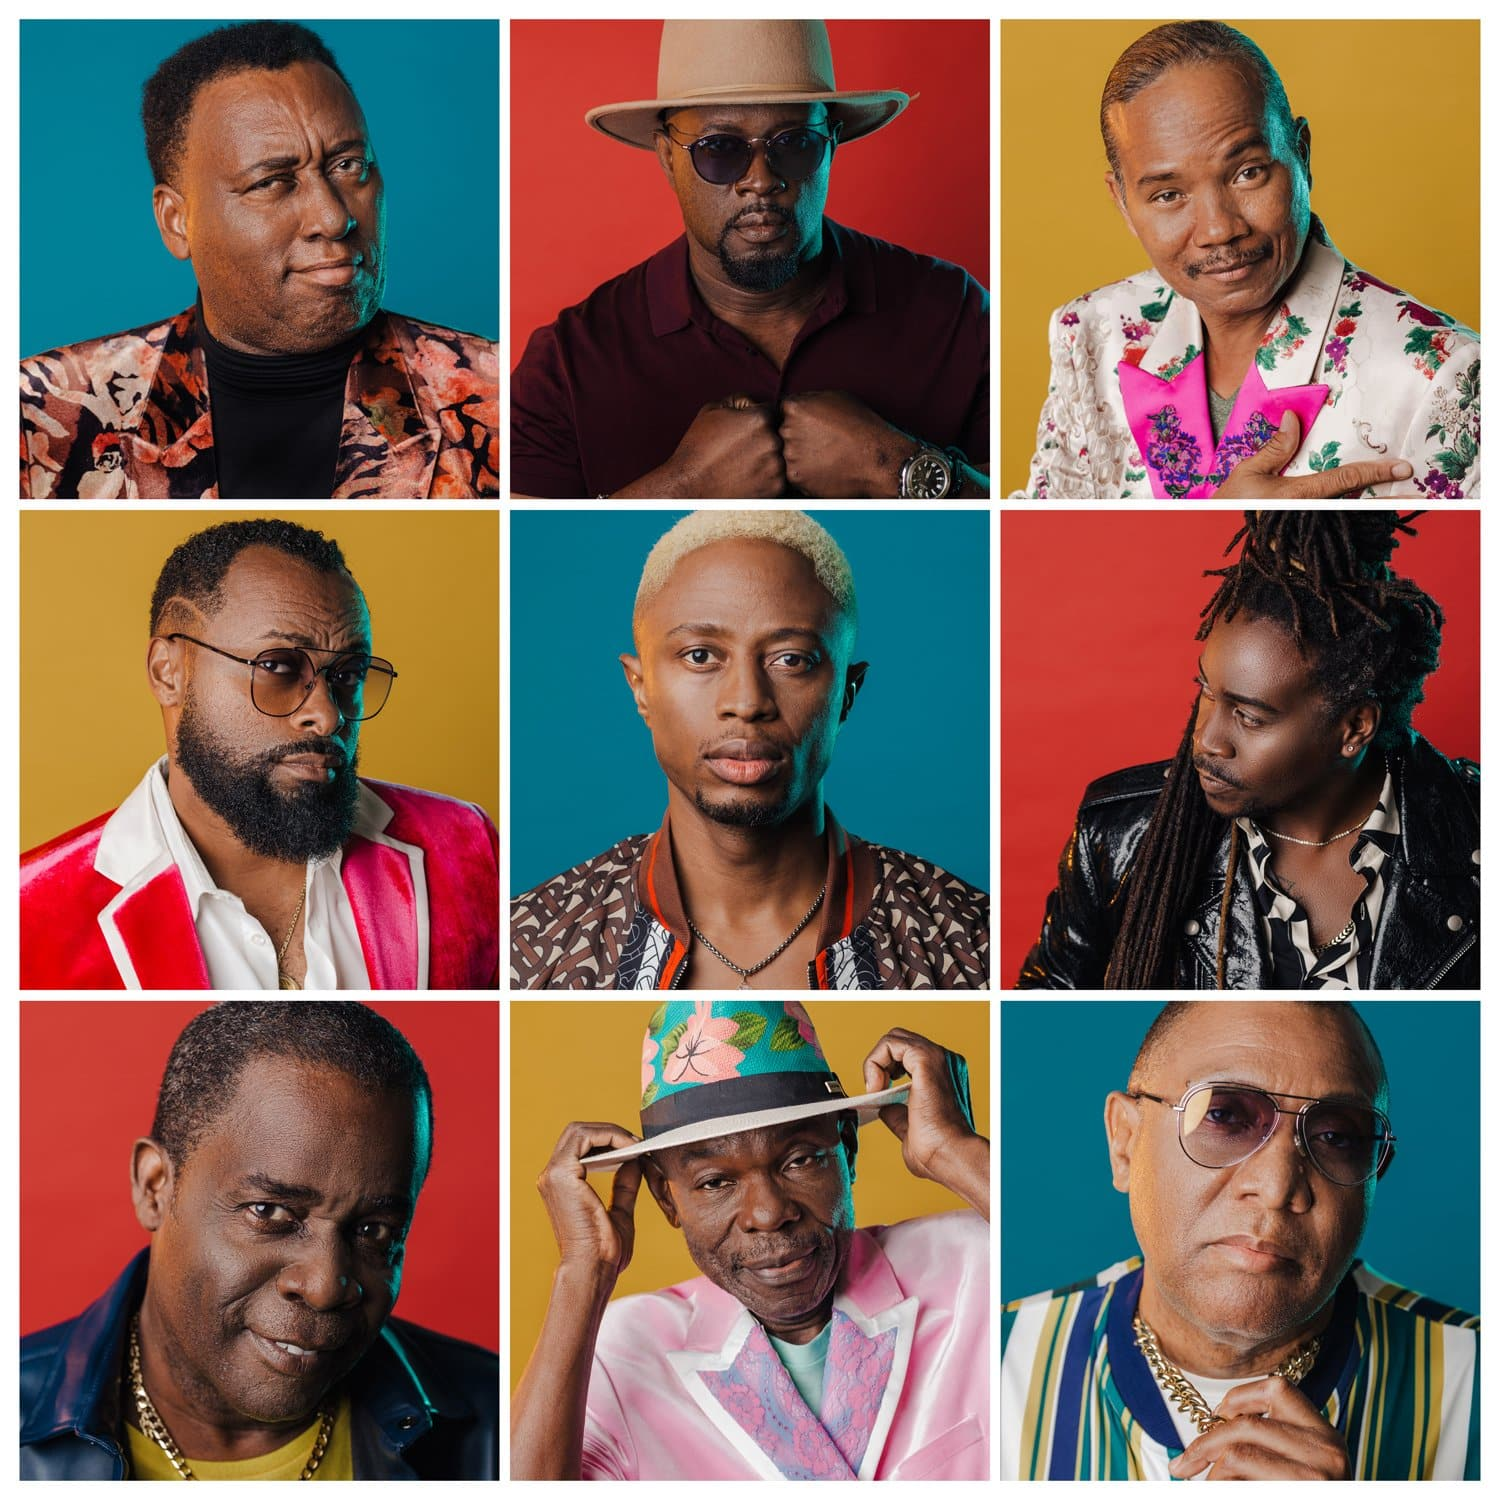 9 square grid of the Baha Men at Ampersand Studios each on color background